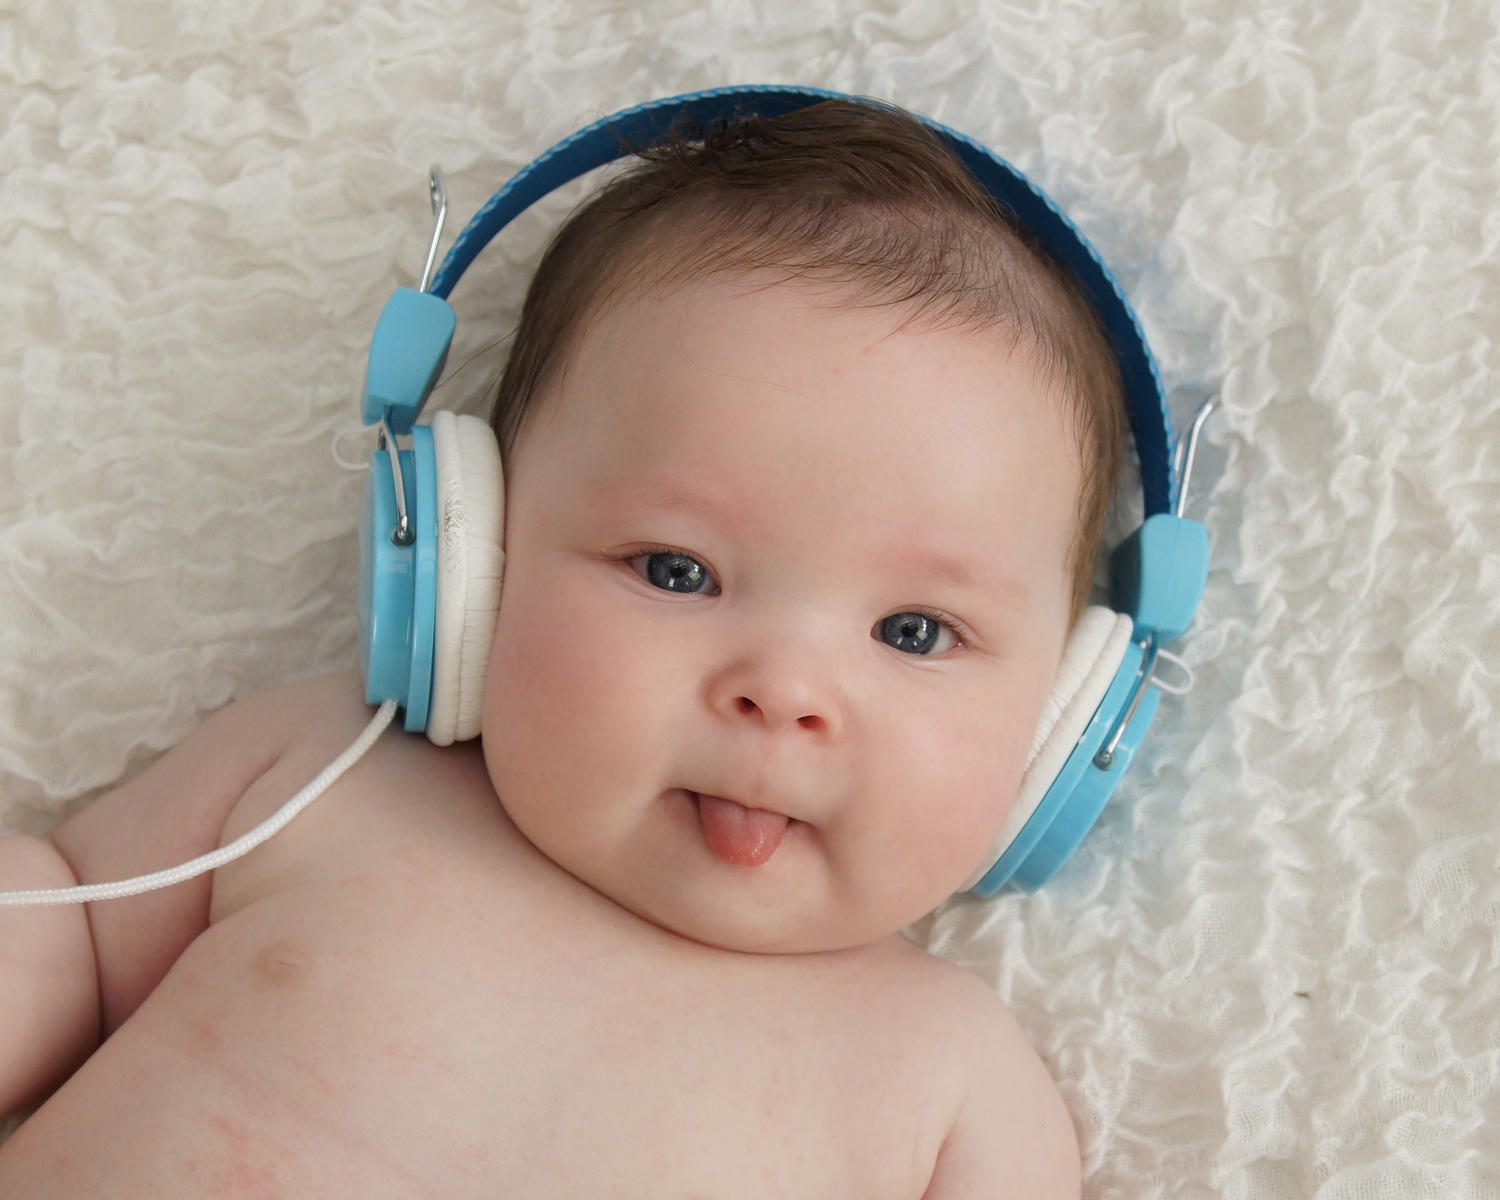 newborn with blue headphones